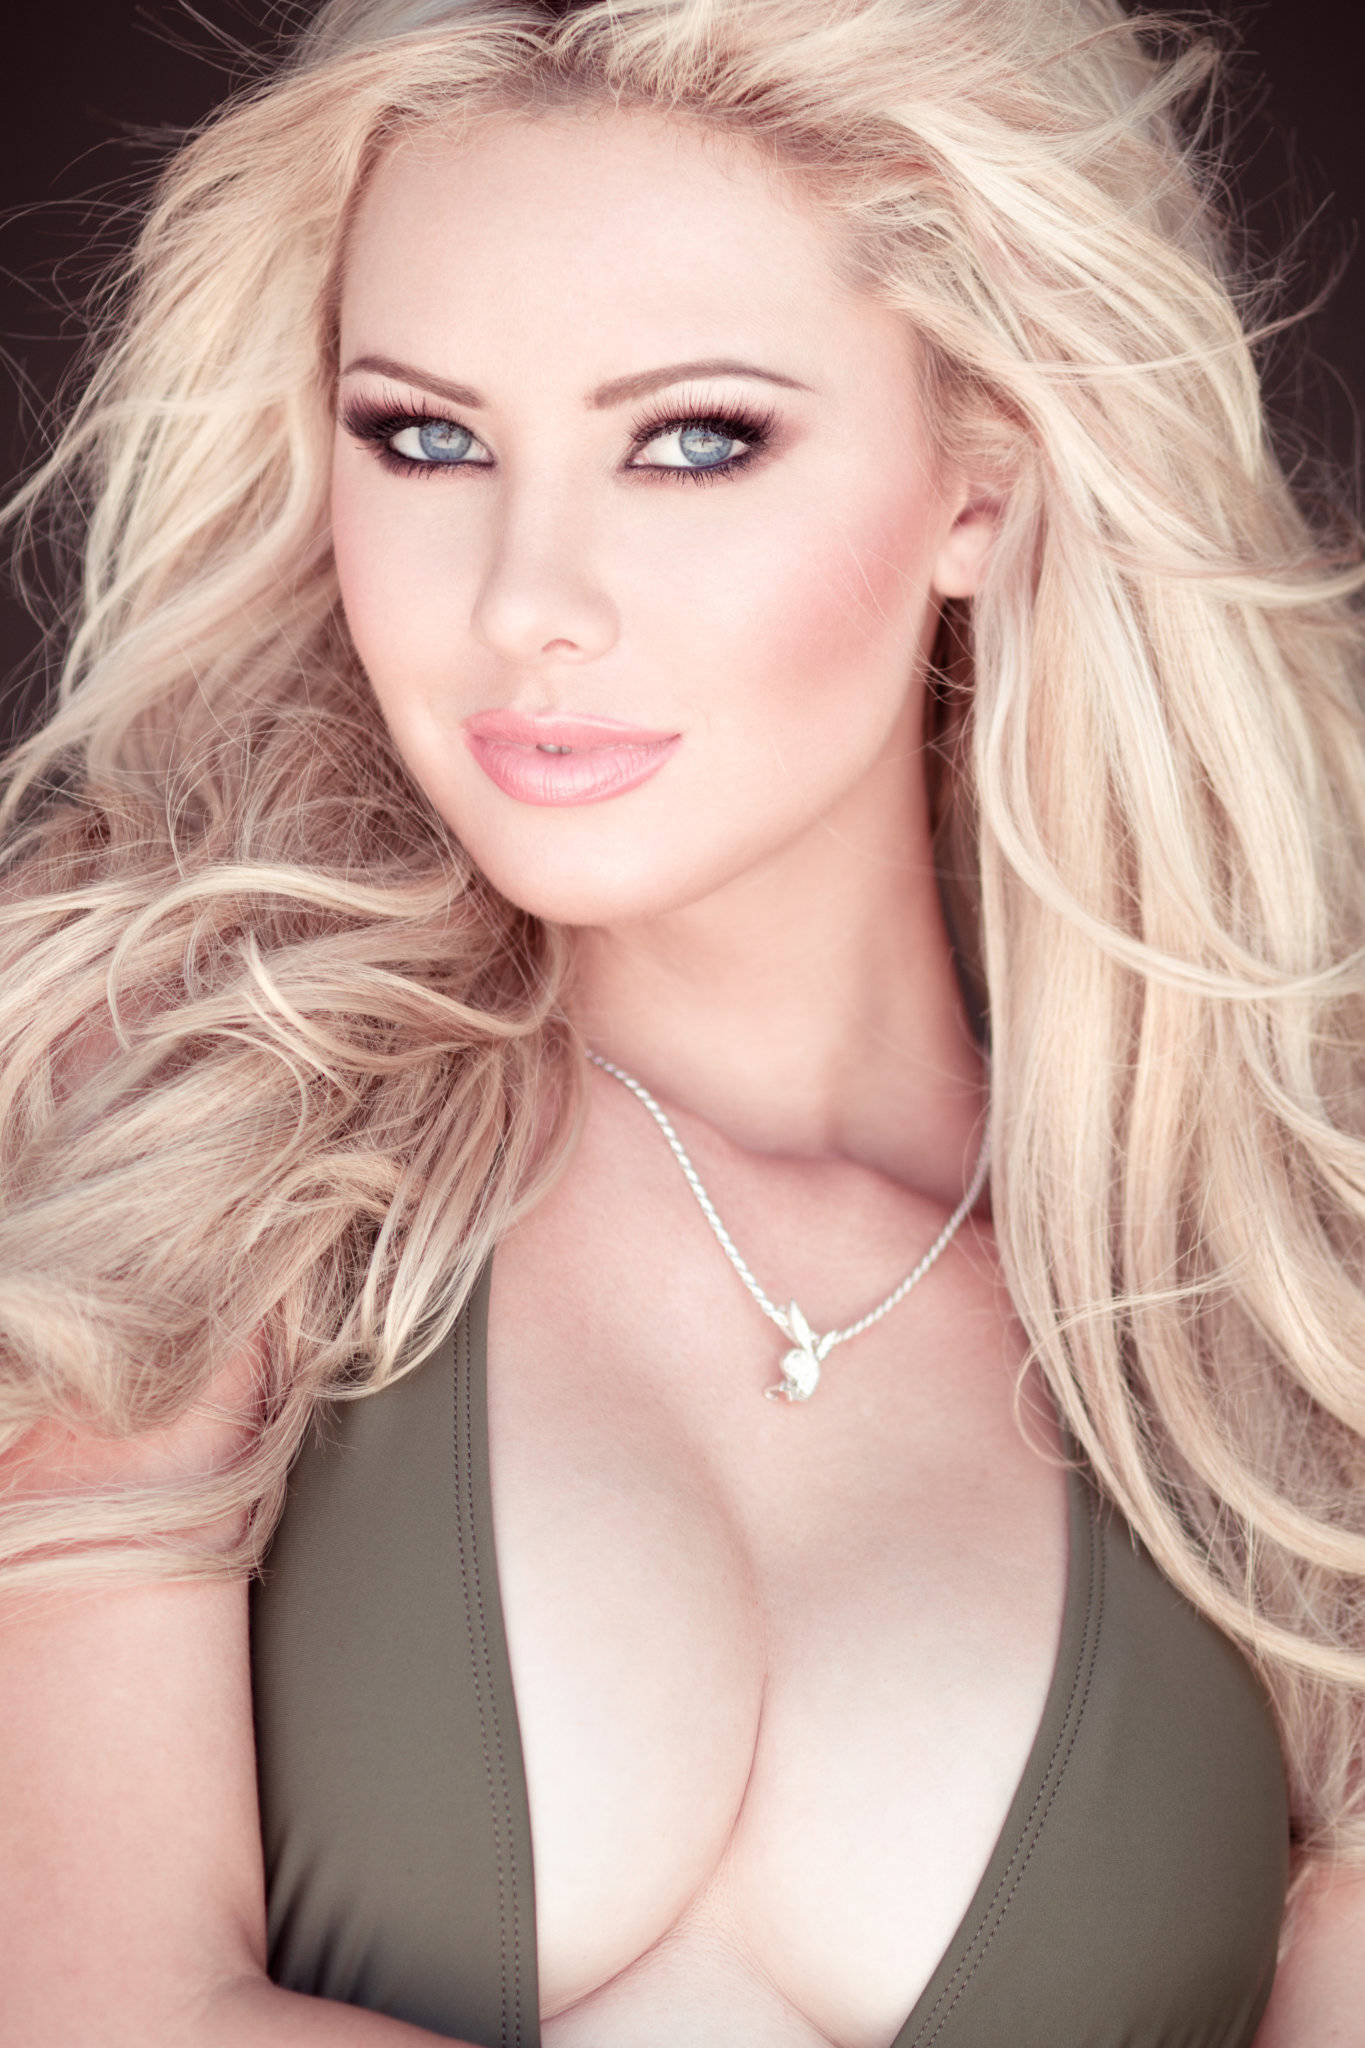 Tiffany Toth Iphone Sexy Wallpapers